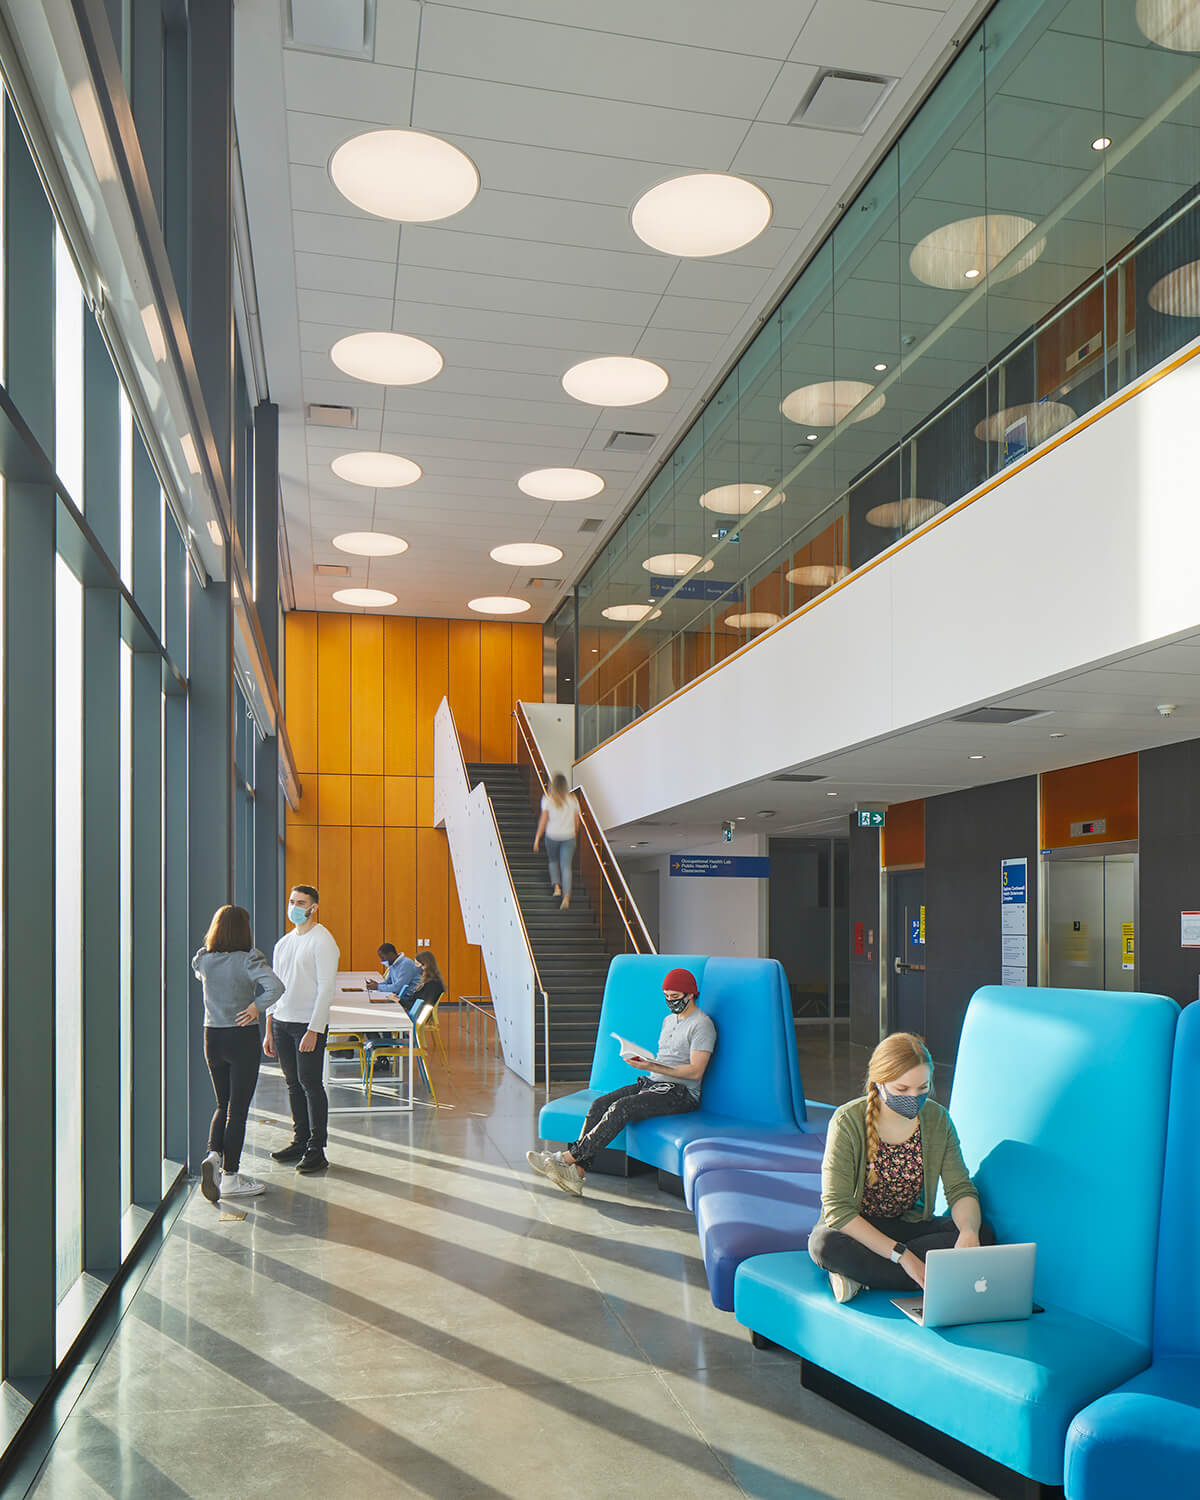 One of building's open seating spaces, showing the staircase and playful blue lounge seating.